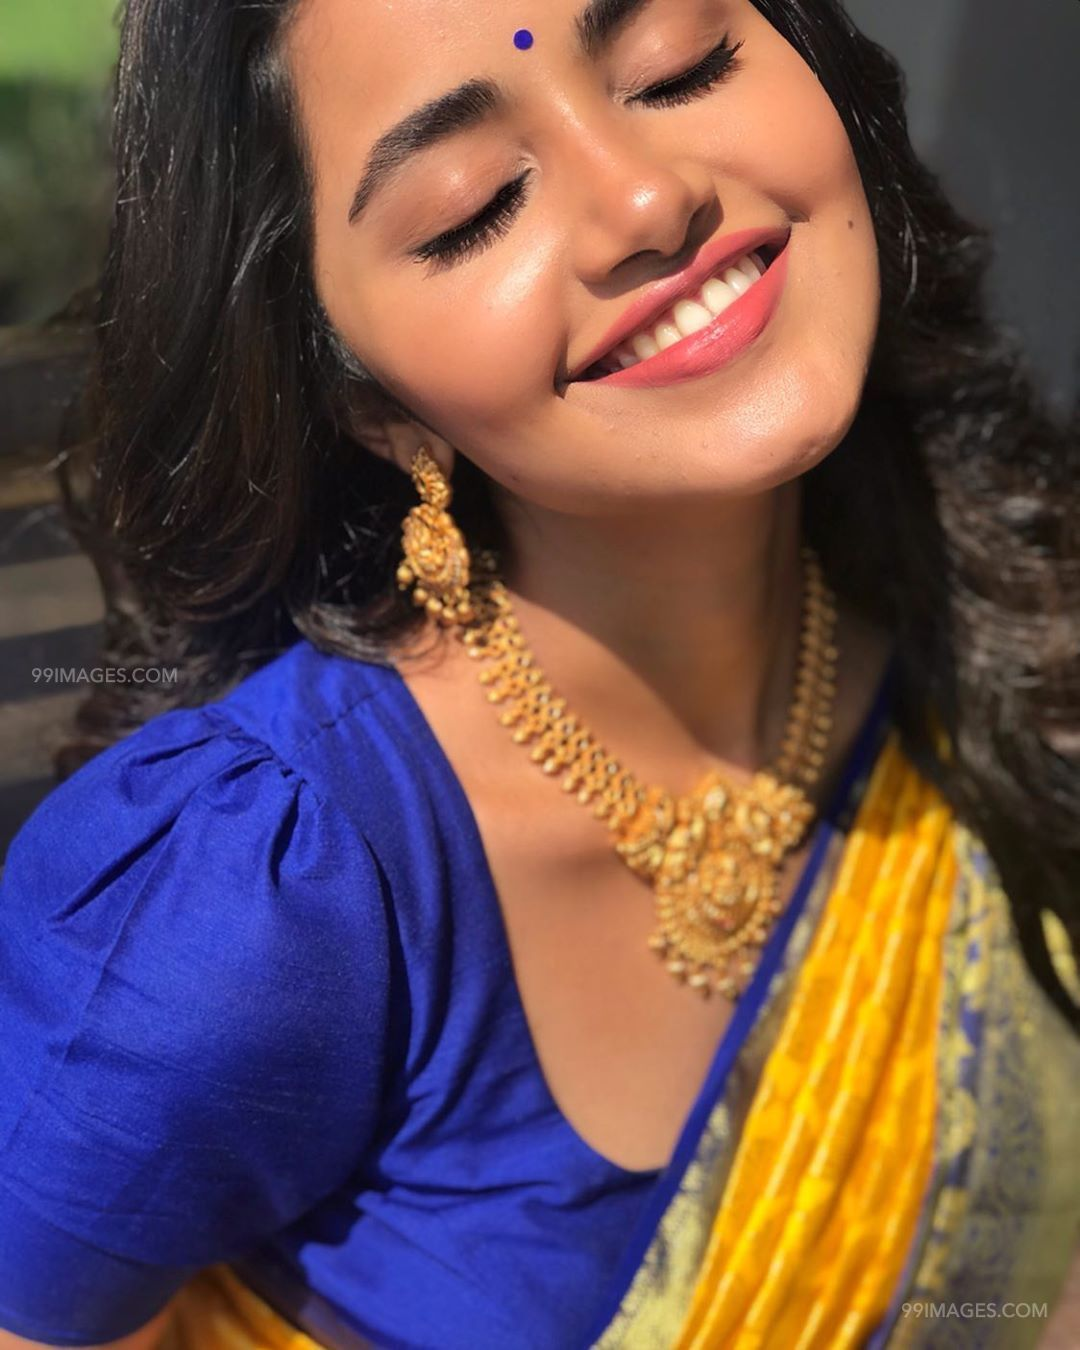 Anupama Parameswaran Beautiful HD Photoshoot Stills & Mobile Wallpapers HD (1080p) (41102) - Anupama Parameswaran